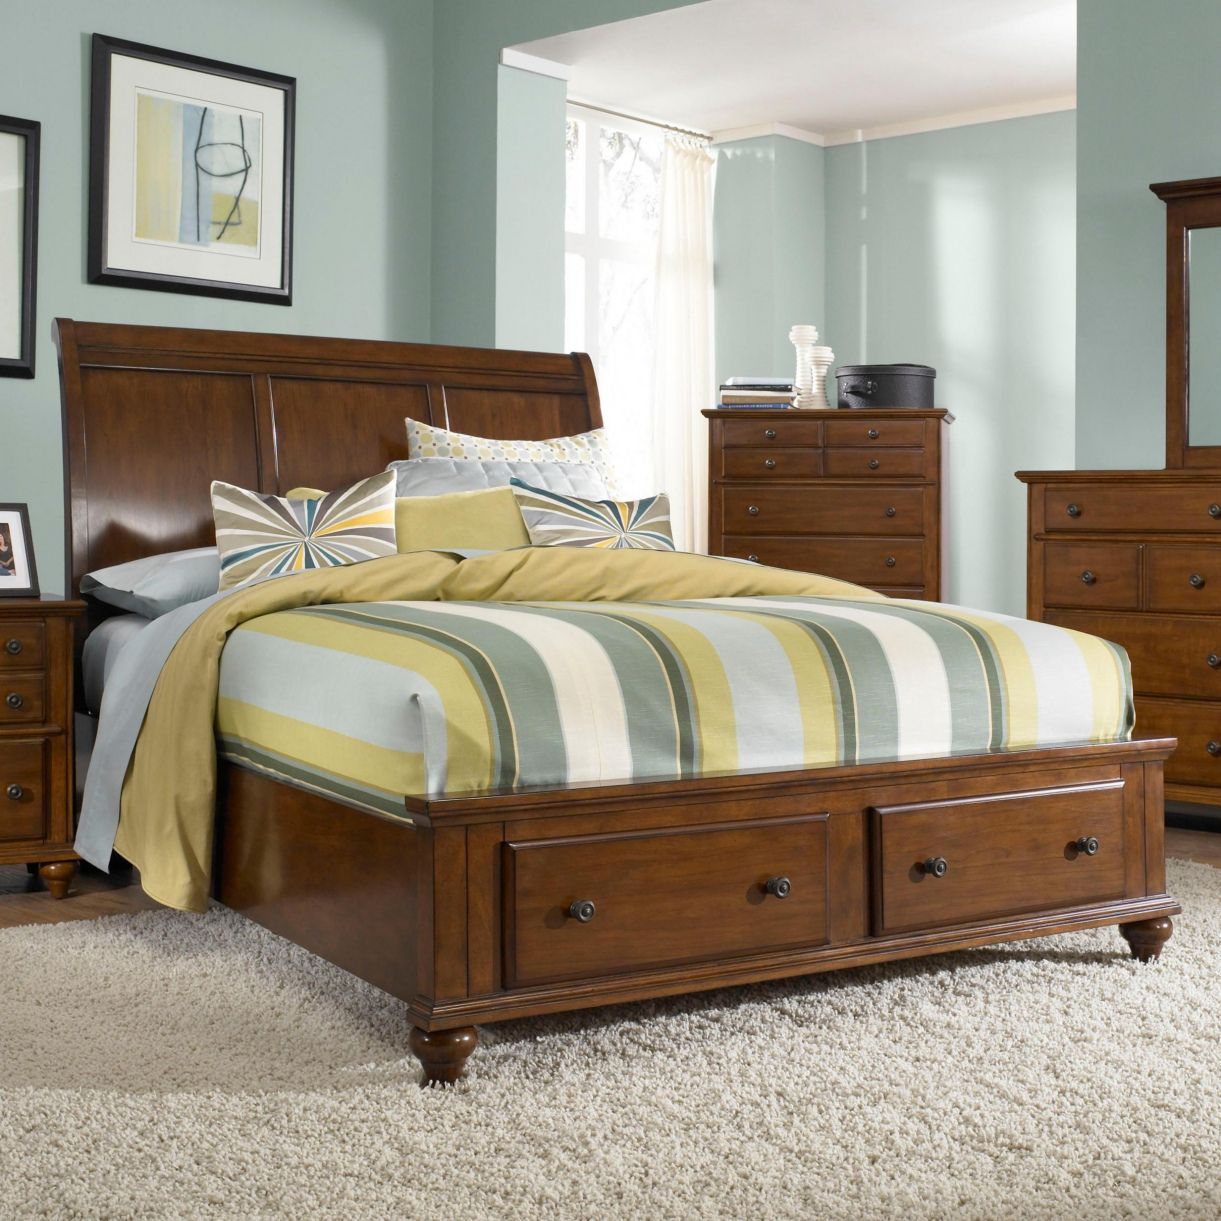 Raymour Flanigan Bedroom Furniture   Interior Paint Color Schemes Check  More At Http://